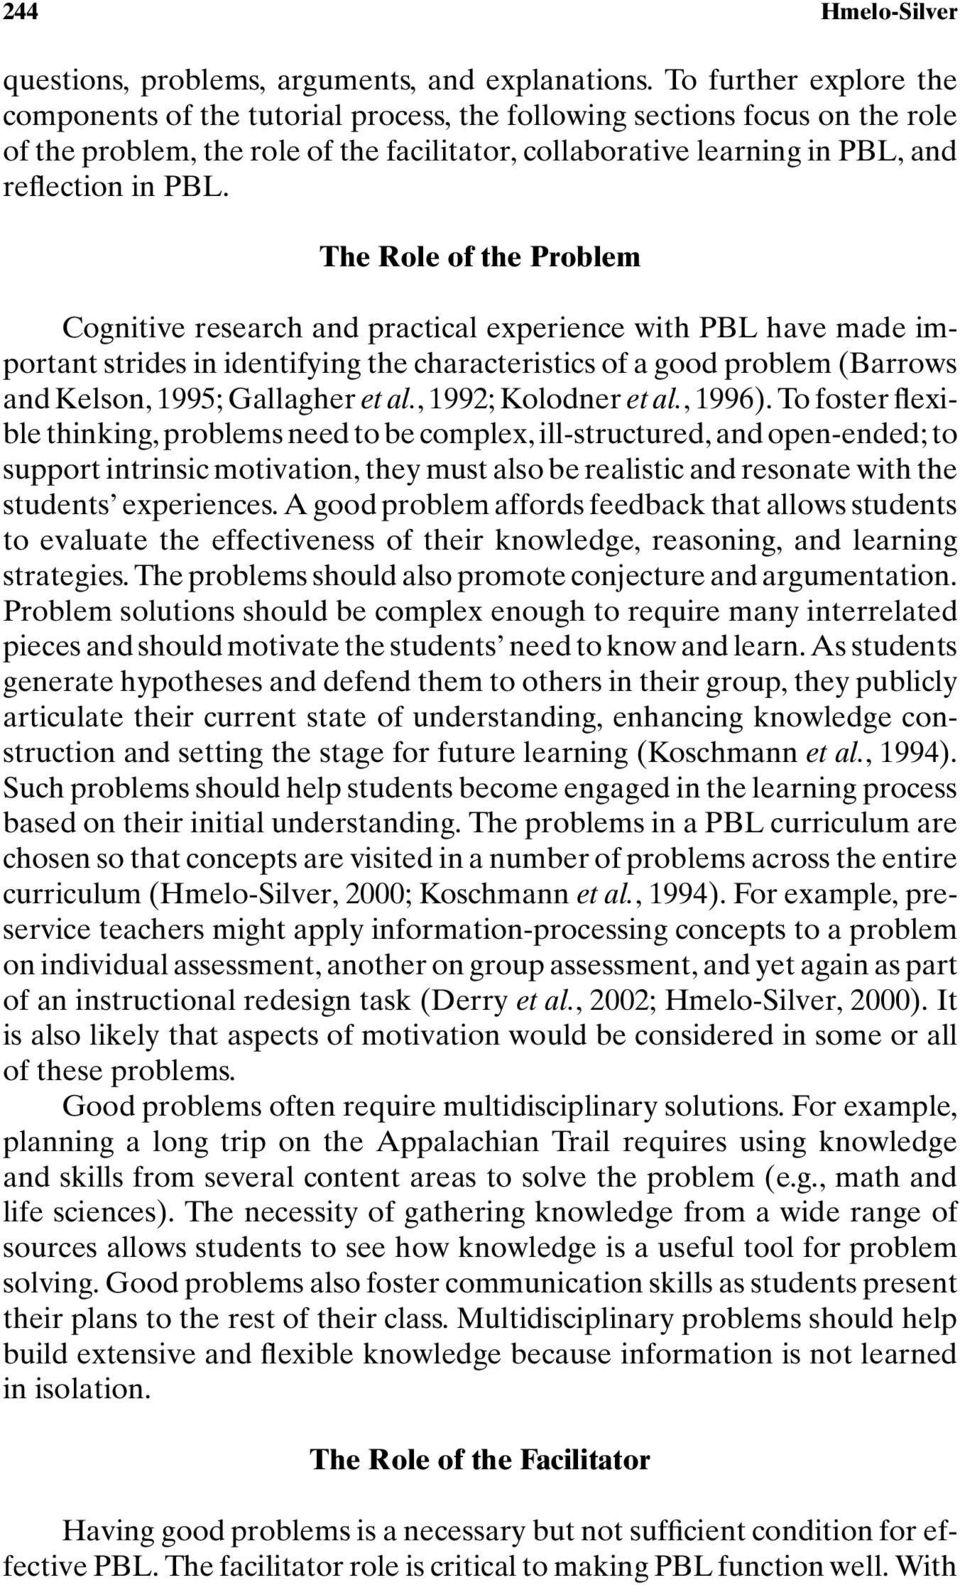 The Role of the Problem Cognitive research and practical experience with PBL have made important strides in identifying the characteristics of a good problem (Barrows and Kelson, 1995; Gallagher et